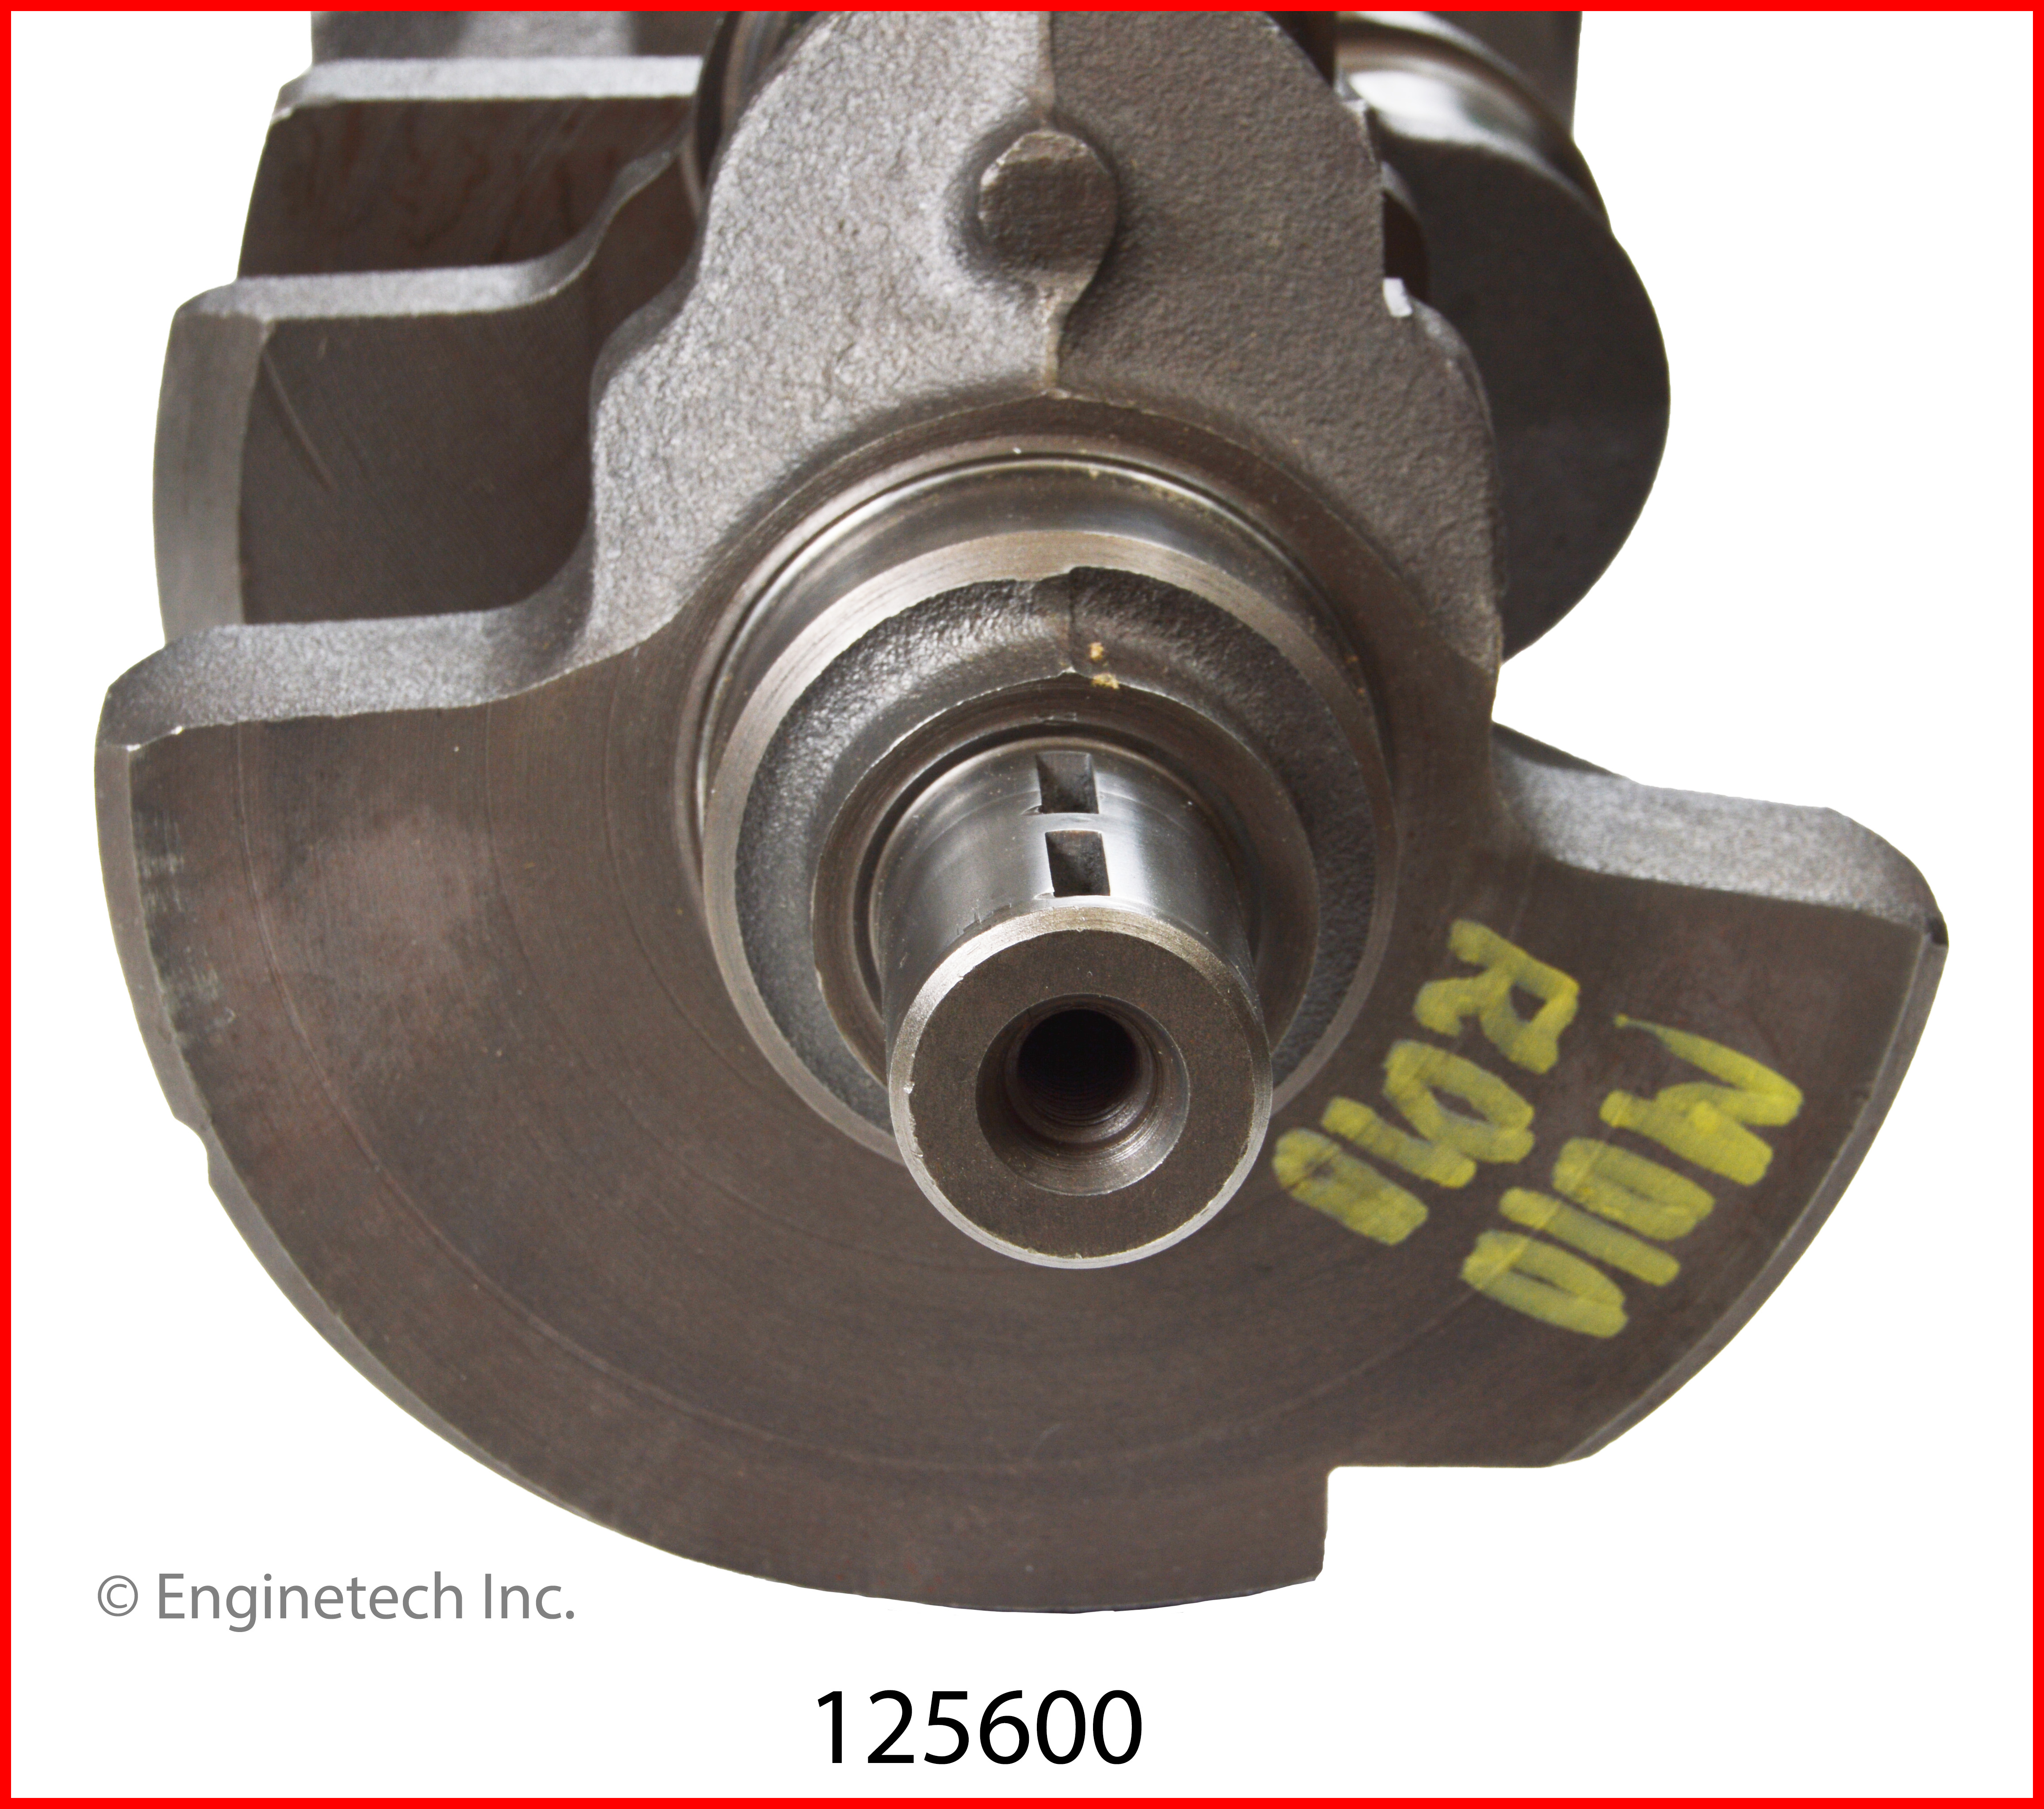 125600 Crank Kit - Reman Enginetech